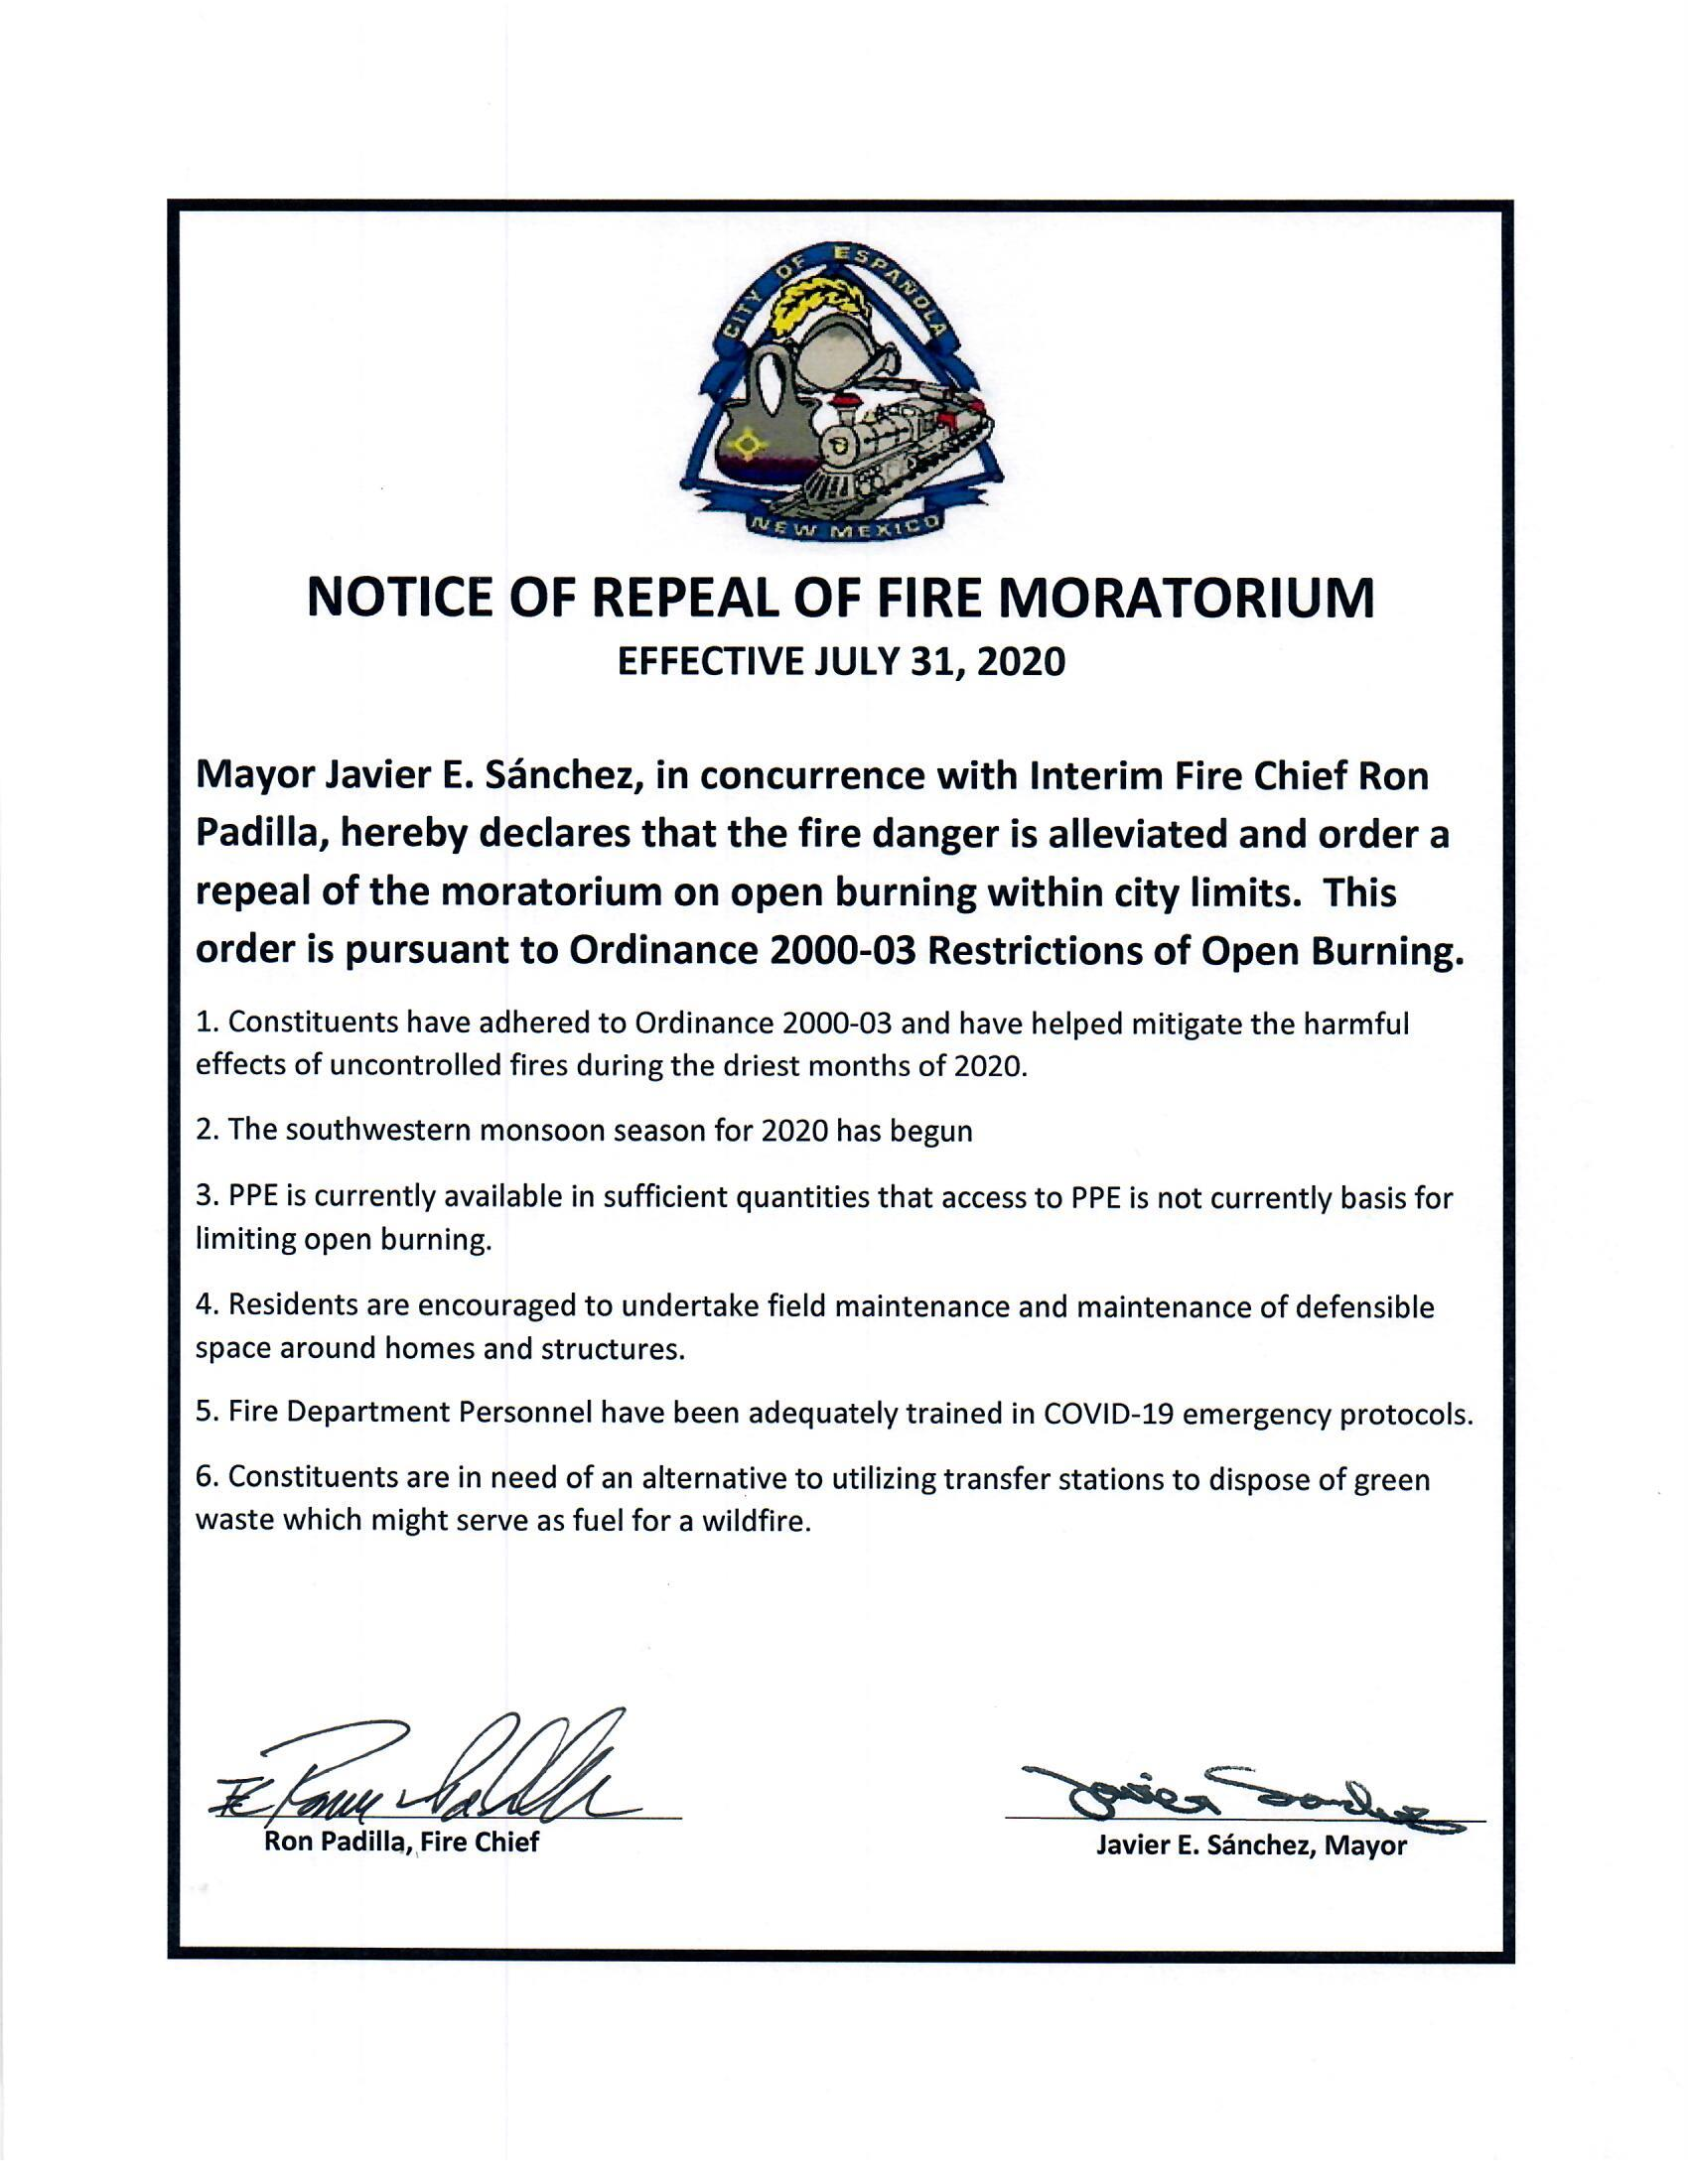 Repeal of Fire Moratorium, 2020